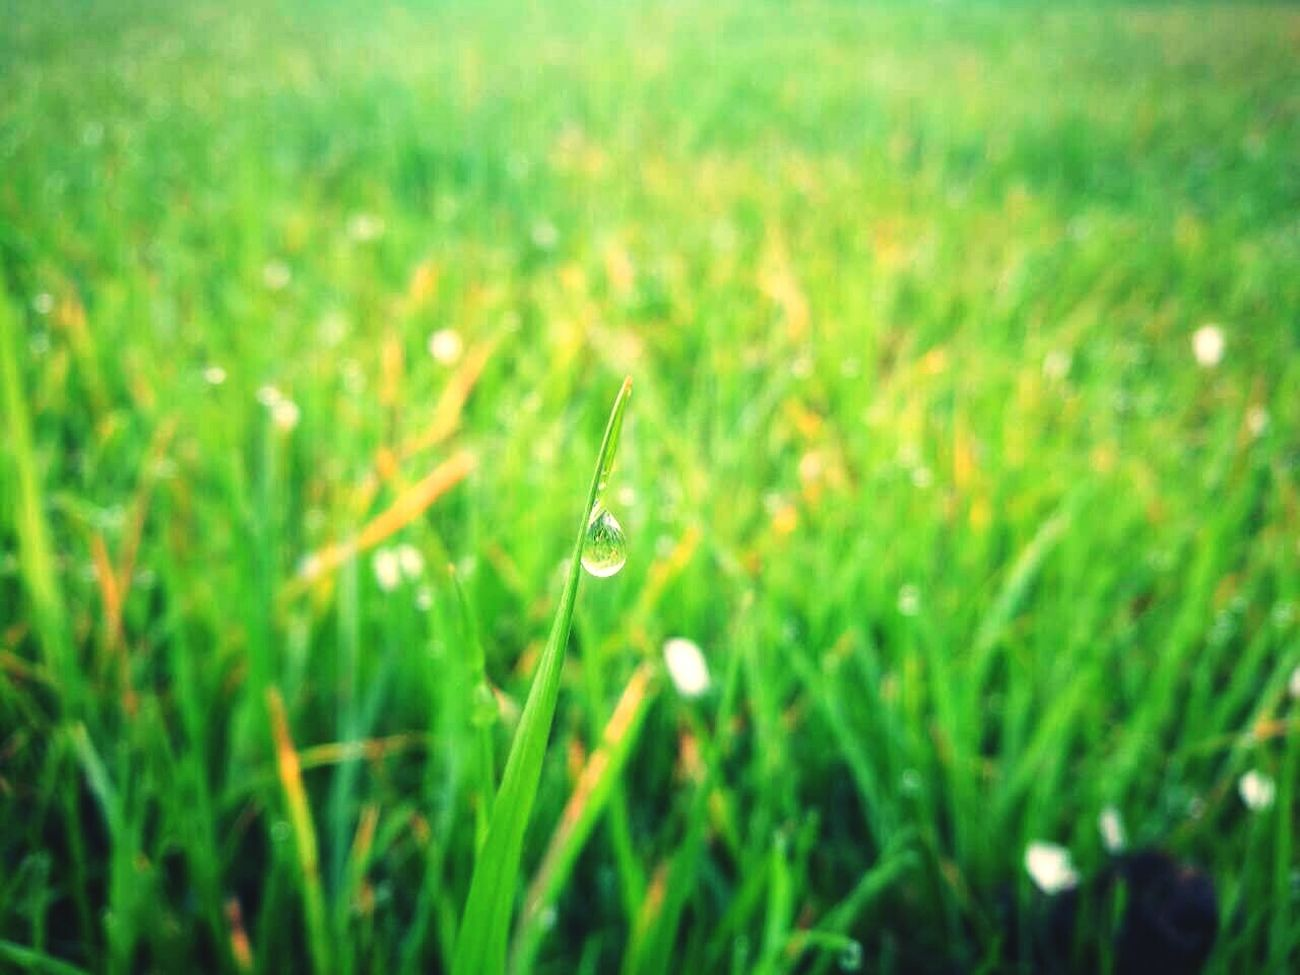 Blade Of Grass Freshness Plant Grass Growth Green Color Outdoors Close-up Beauty In Nature No People Rural Scene Nature Cereal Plant Day Fragility Field Winter Spring Spring Flowers Spring Is Coming  Spring Has Arrived